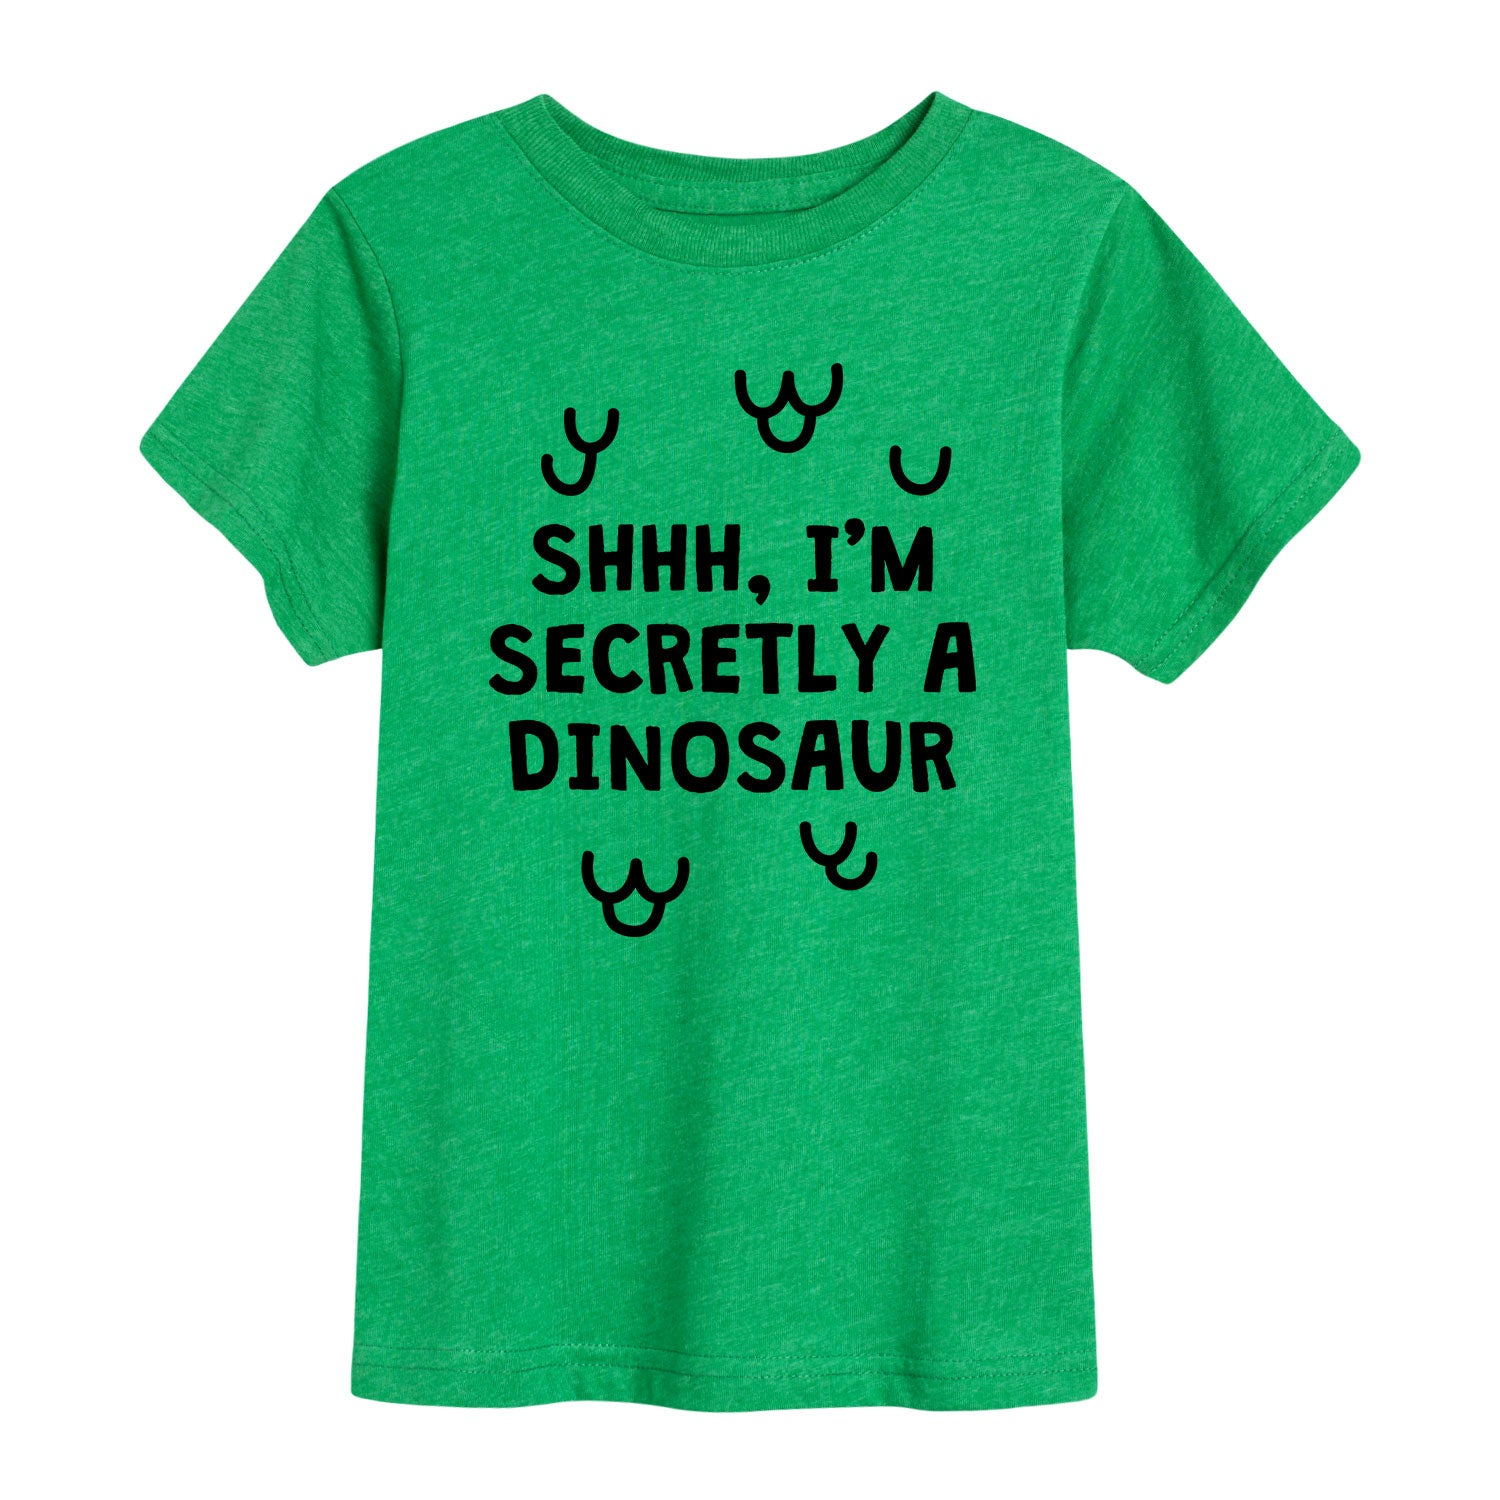 Secretly A Dinosaur - Toddler Short Sleeve T-Shirt